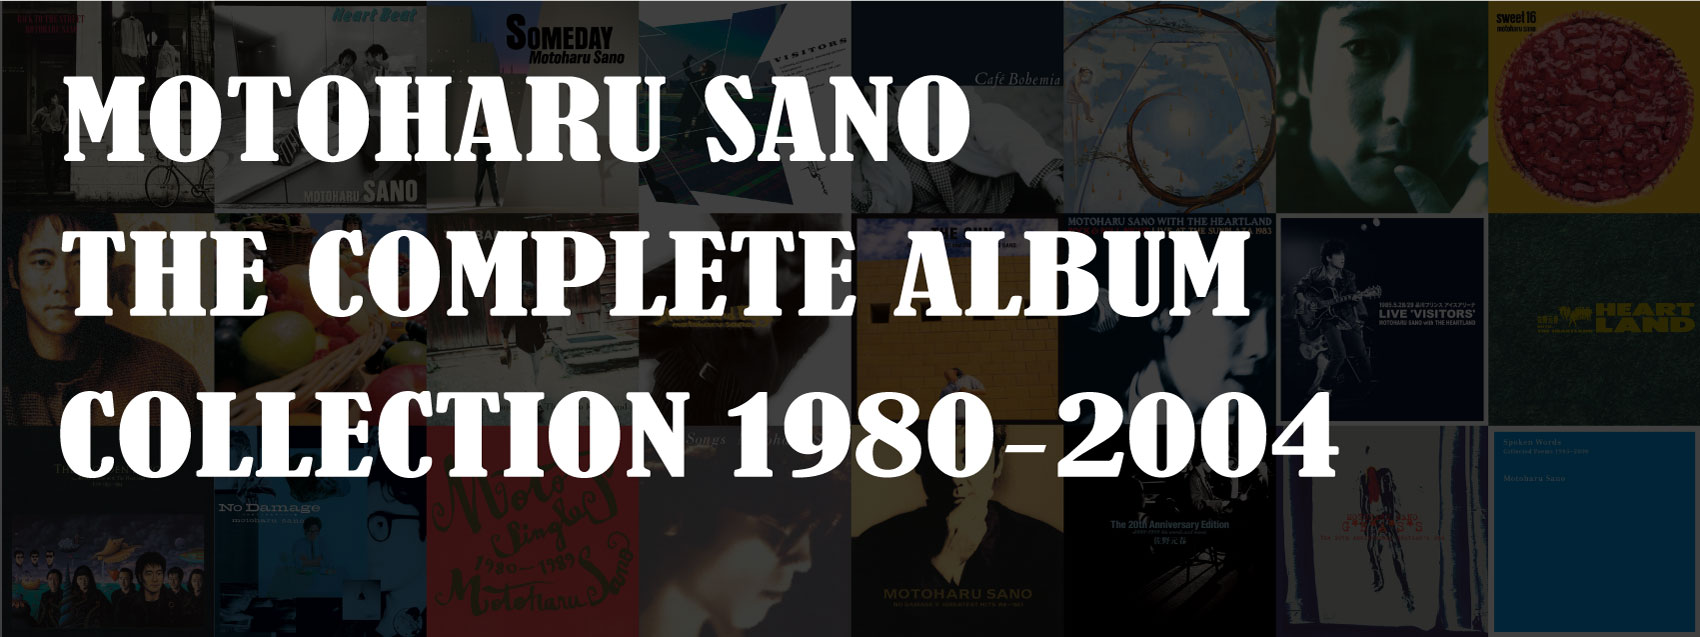 MOTOHARU THE SANO COMPLETE ALBUM COLLECTION 1980-2004